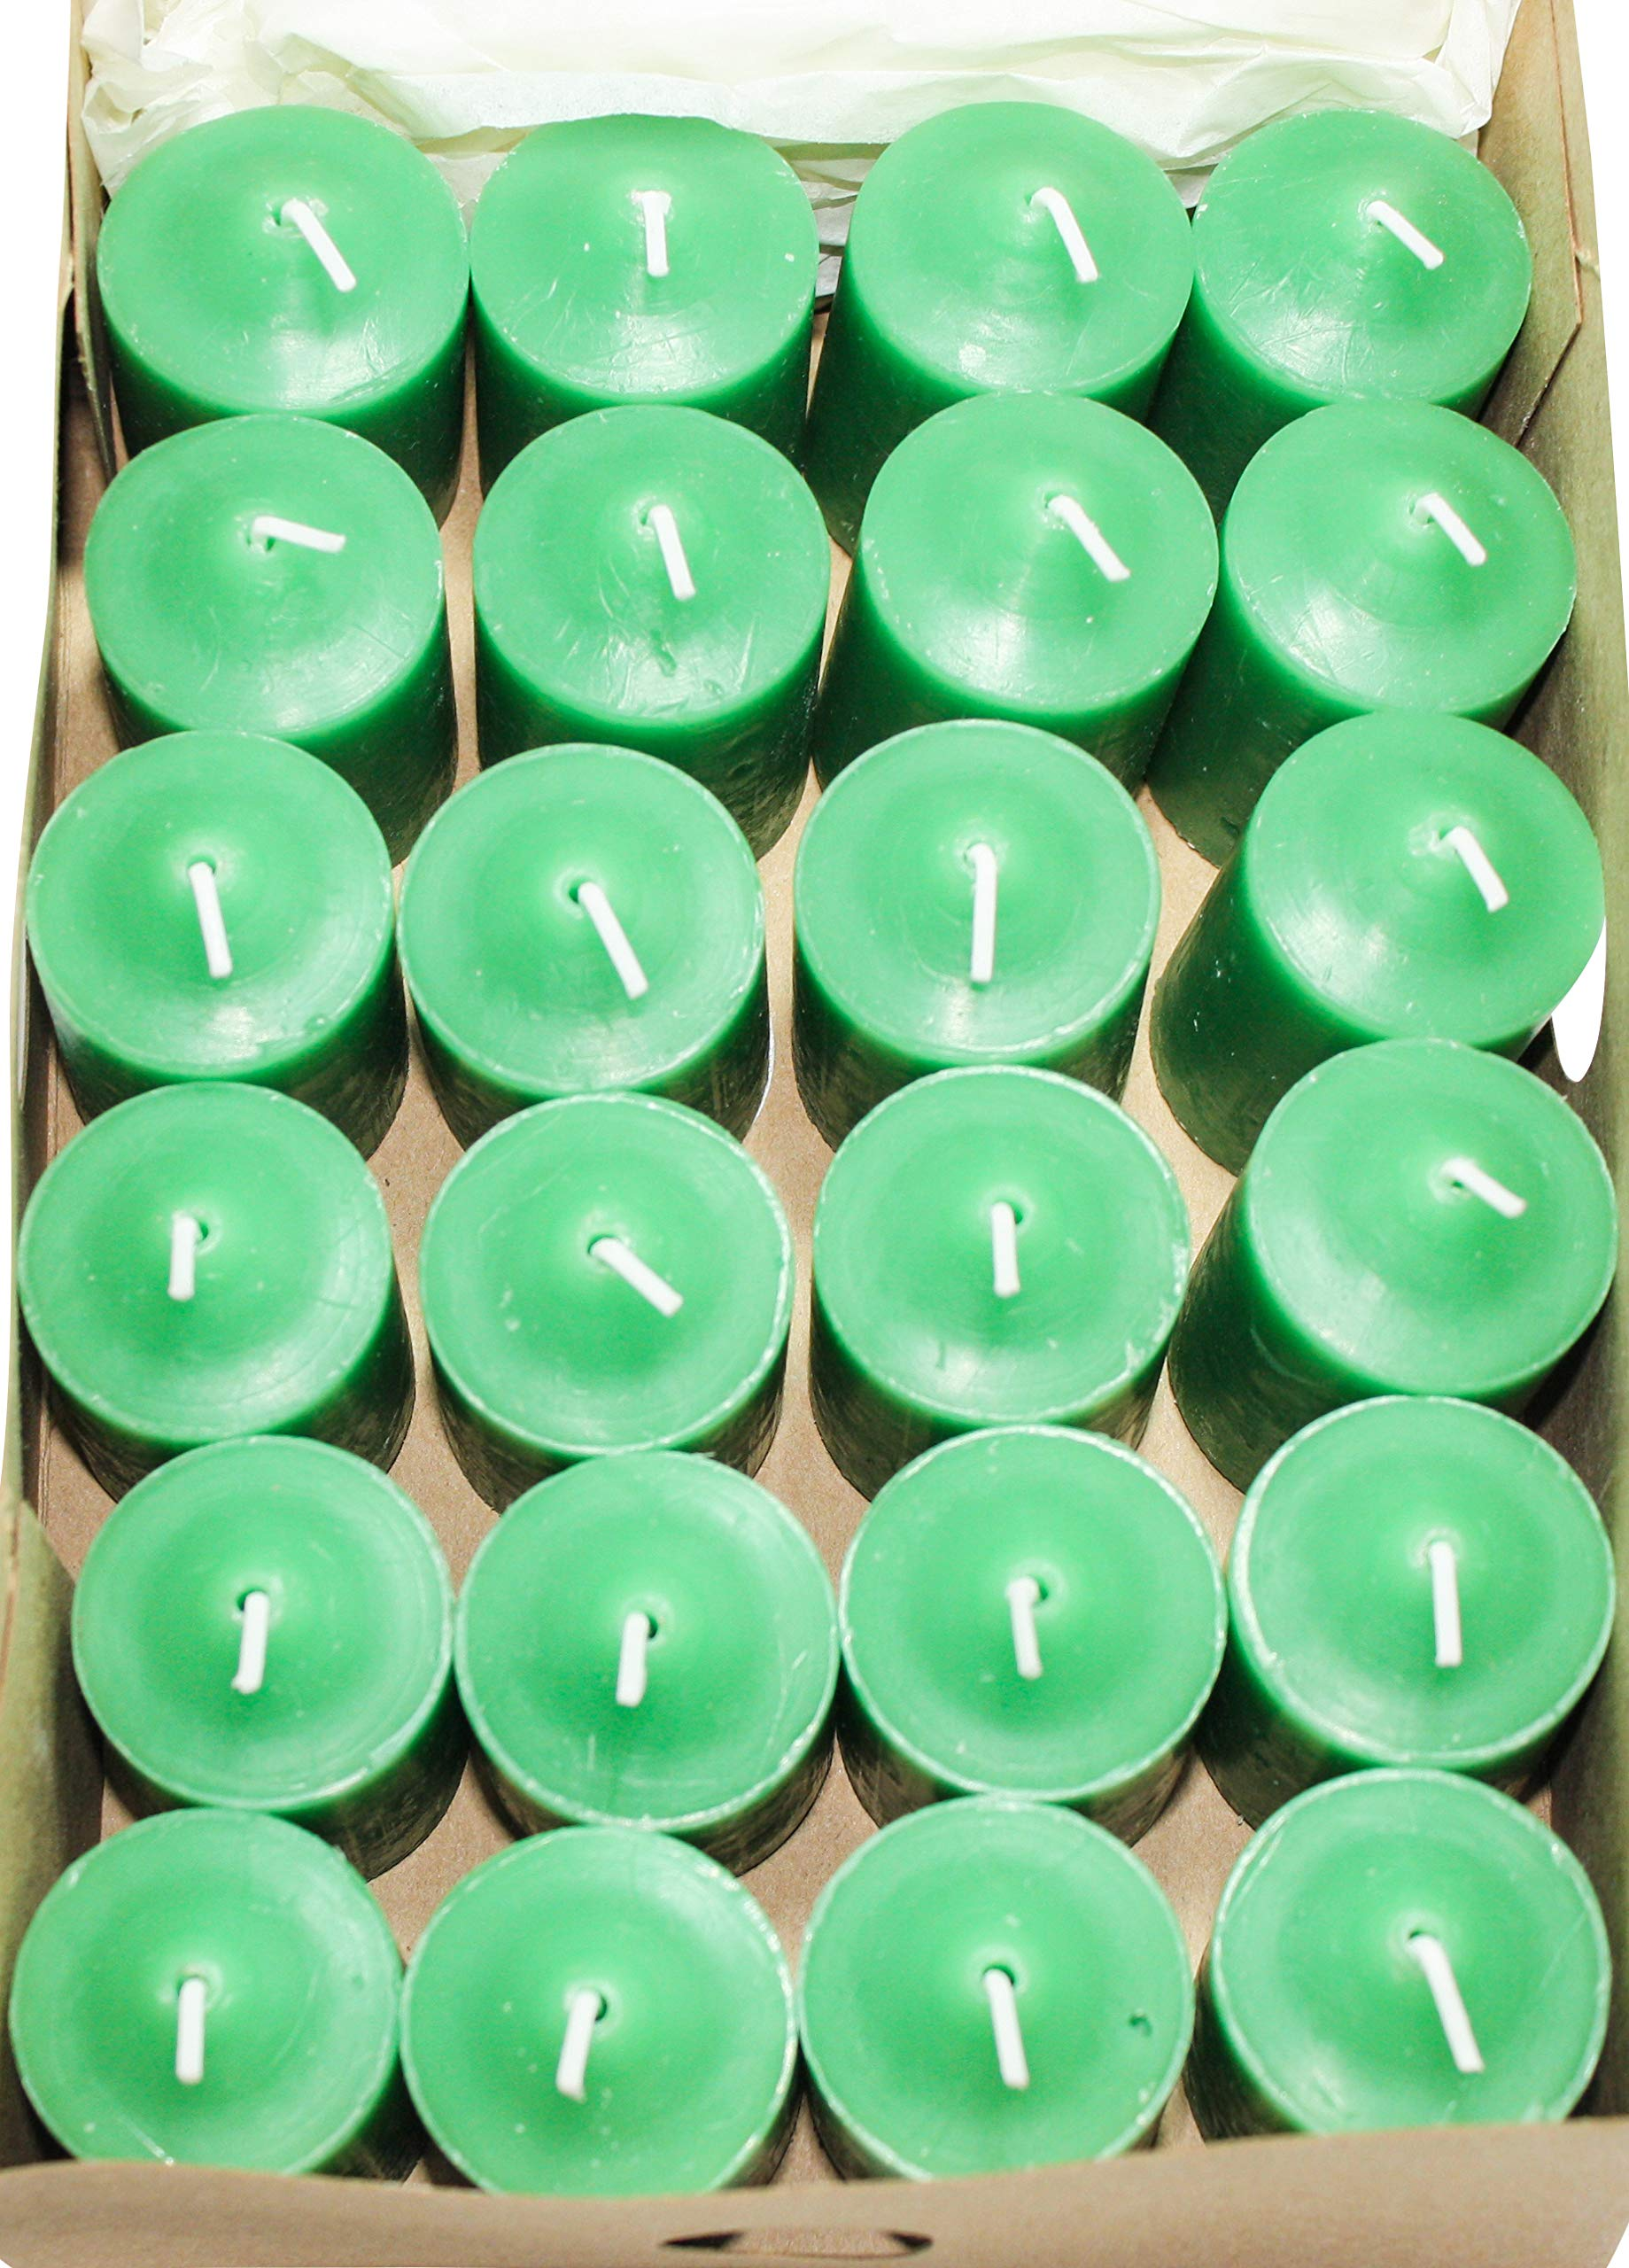 Enlightened Ambience 24 Fresh Green Tea Party Highly Scented Votive Candles